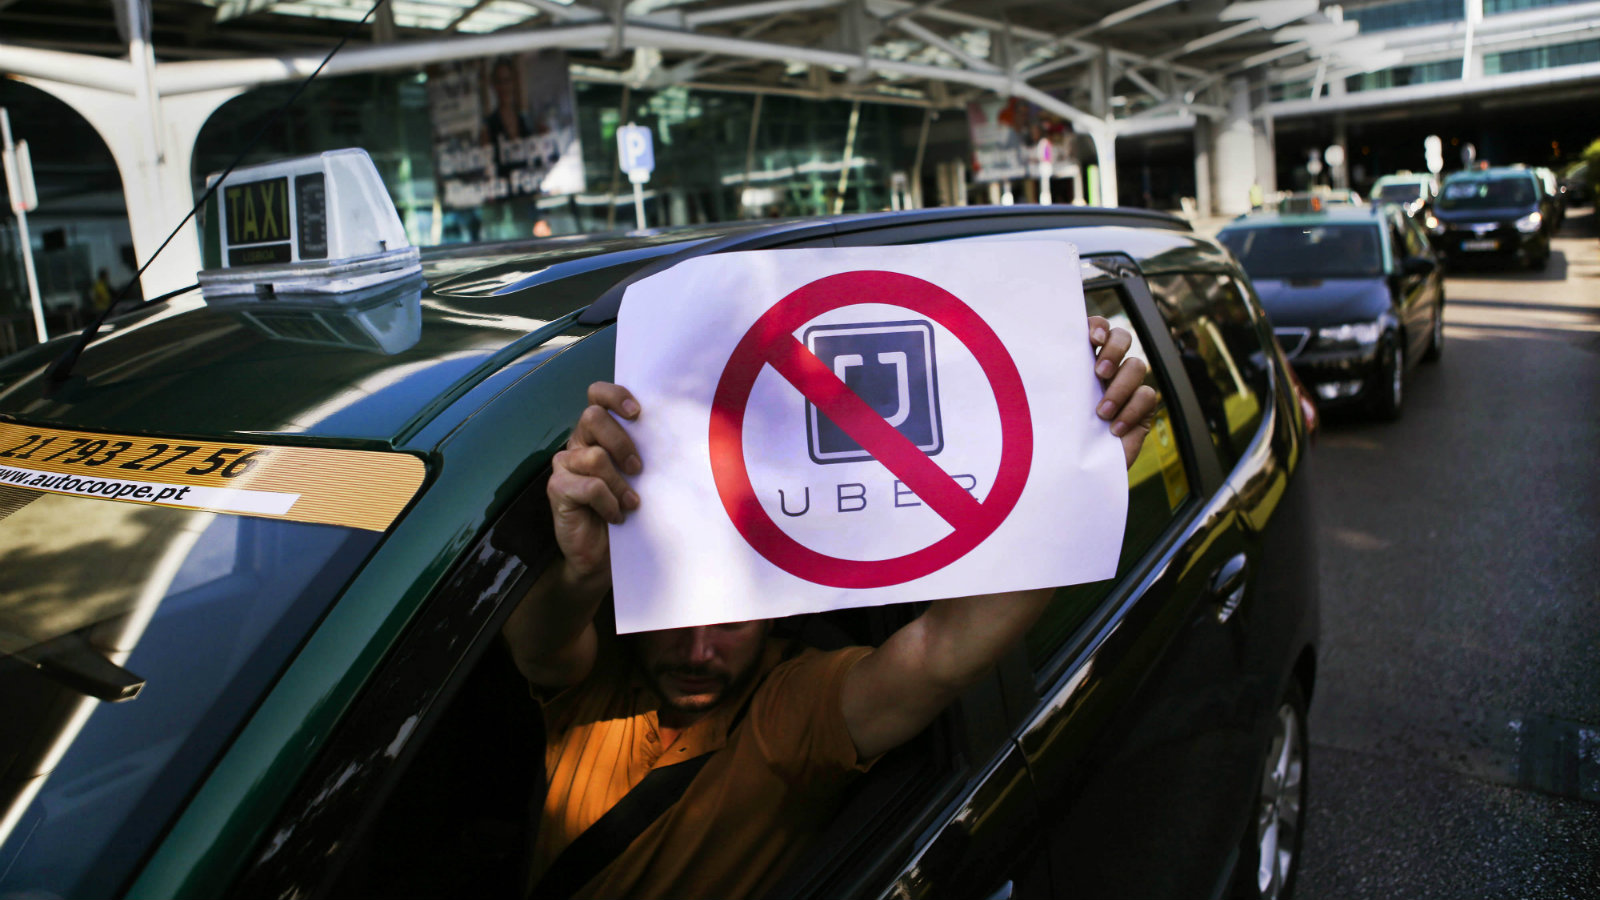 A taxi driver hold a crossed out Uber sign during a protest action in Lisbon, Portugal, 08 September 2015. More than a thousand taxi drivers protested in Lisbon against ride-sharing company Uber, blocking roads and stalling traffic during morning rush hour as tensions rise in the city over the mobile app ride service.